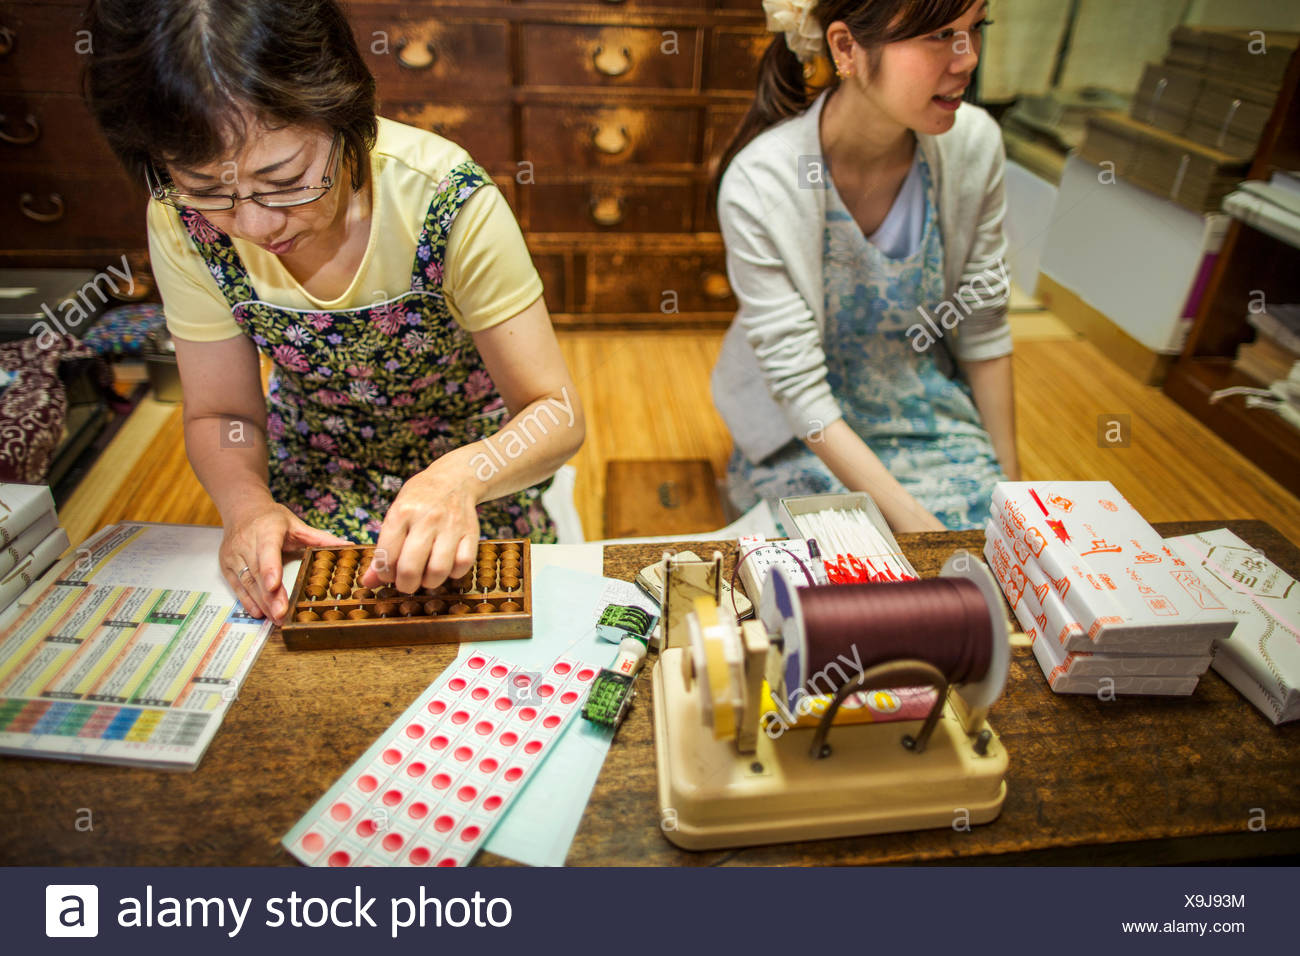 A small artisan producer of specialist treats, sweets called wagashi. Two women working packing sweet boxes for delivery. - Stock Image